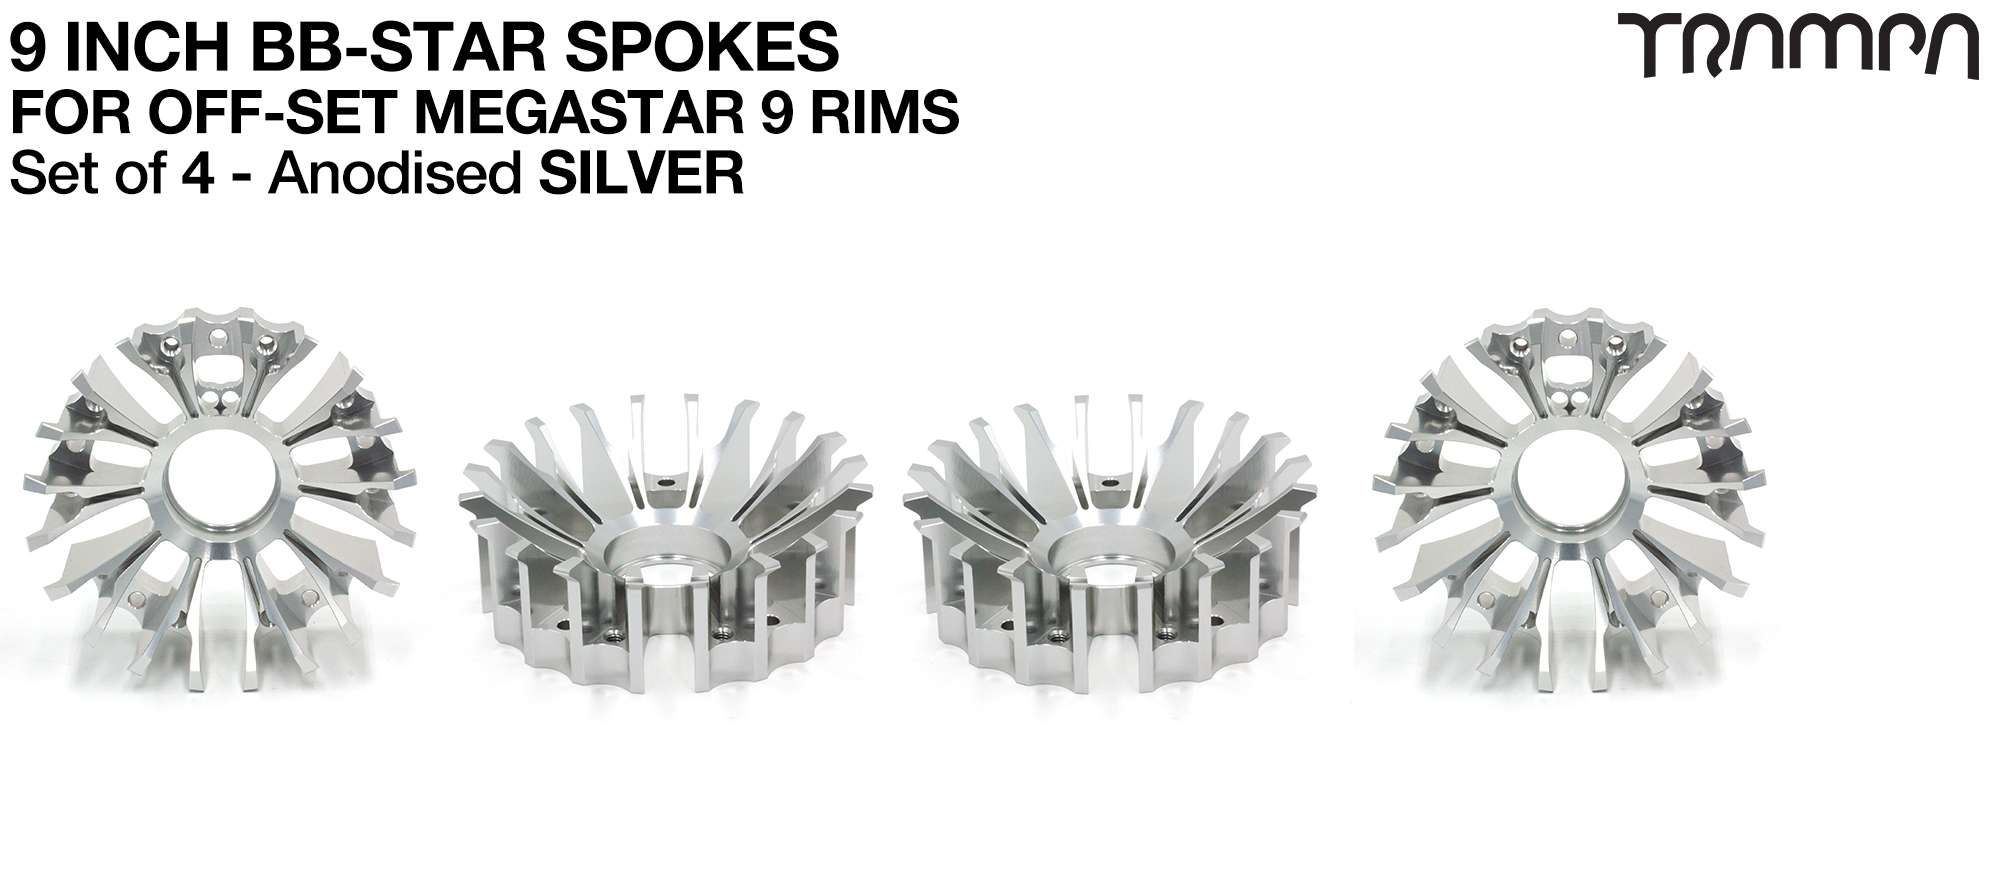 BBStar Spoke for SUPERSTAR or any size MEGASTAR rims - Extruded T6 Aluminium Heat treated & CNC Precision milled -  SILVER